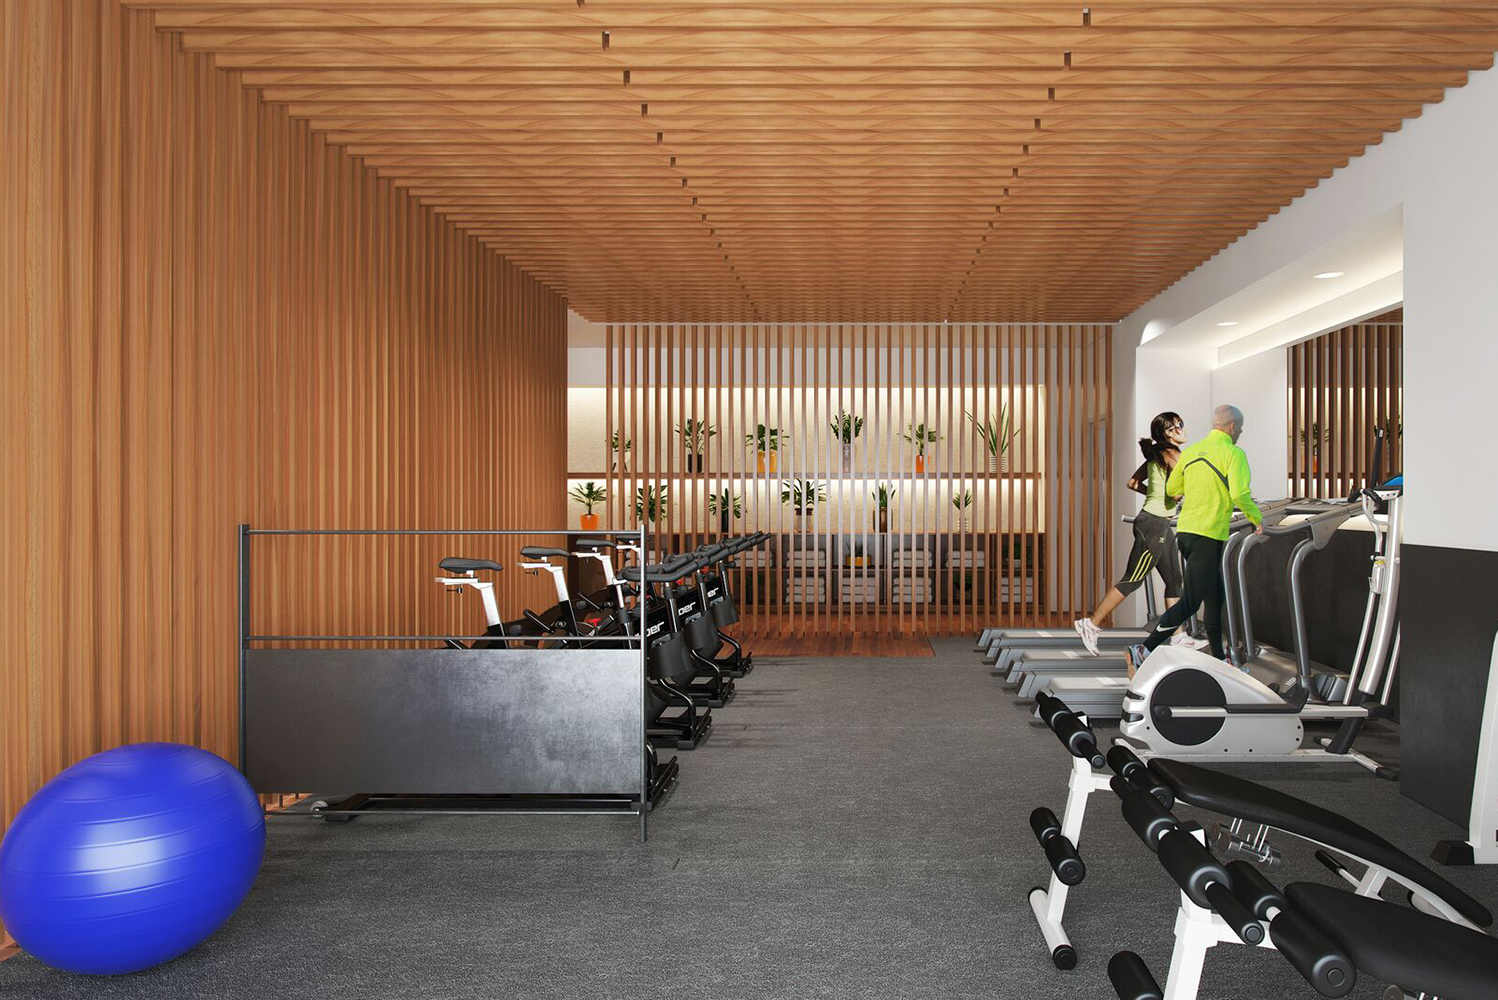 The gym has treadmills, stationary bikes and a designated free weight area.